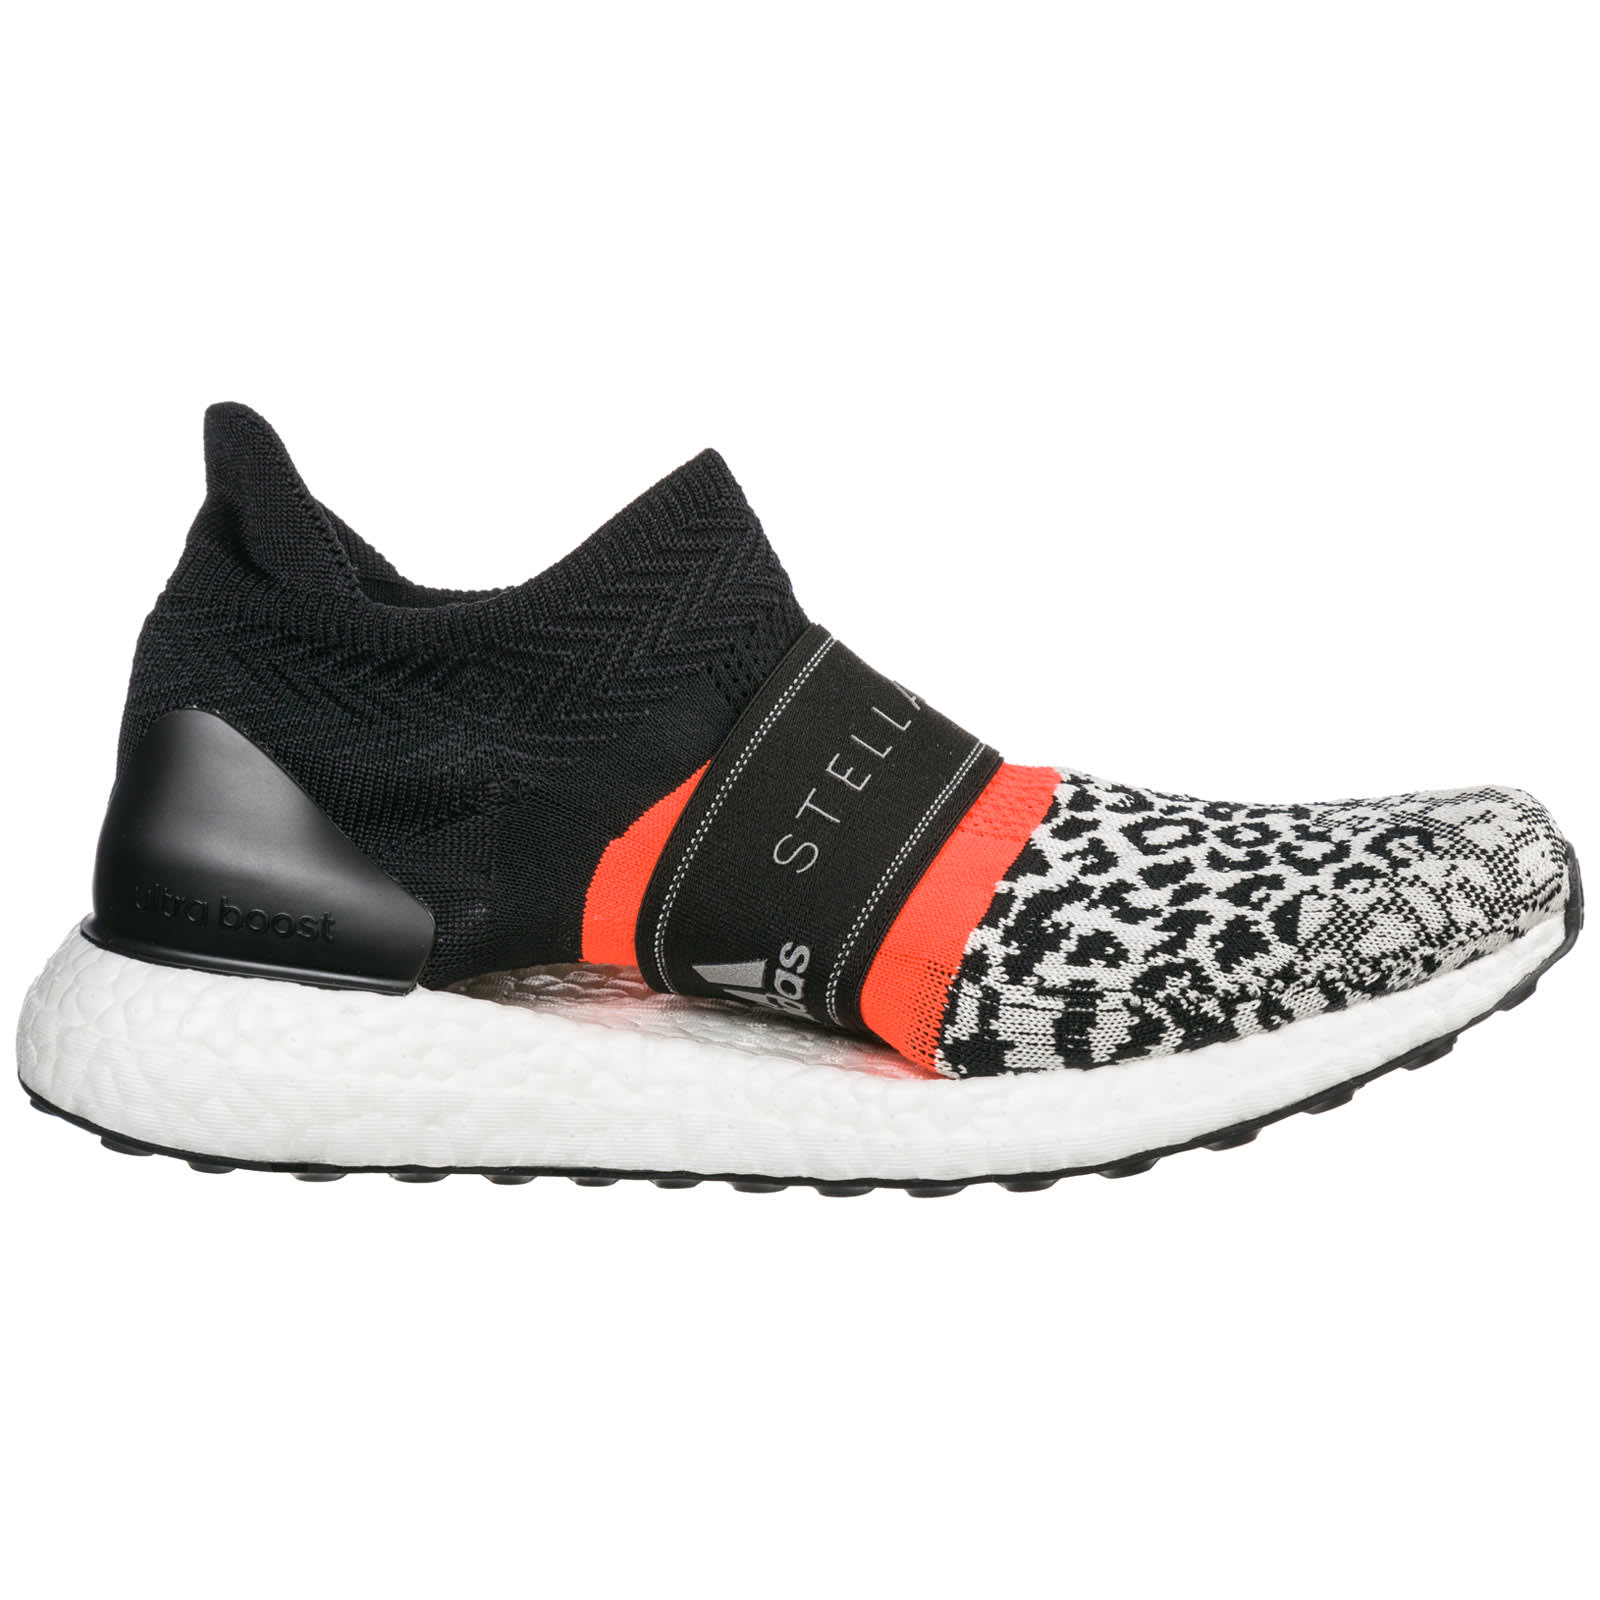 buy online 23f5b 31505 Adidas by Stella McCartney Shoes Trainers Sneakers Running Ultraboost X 3d